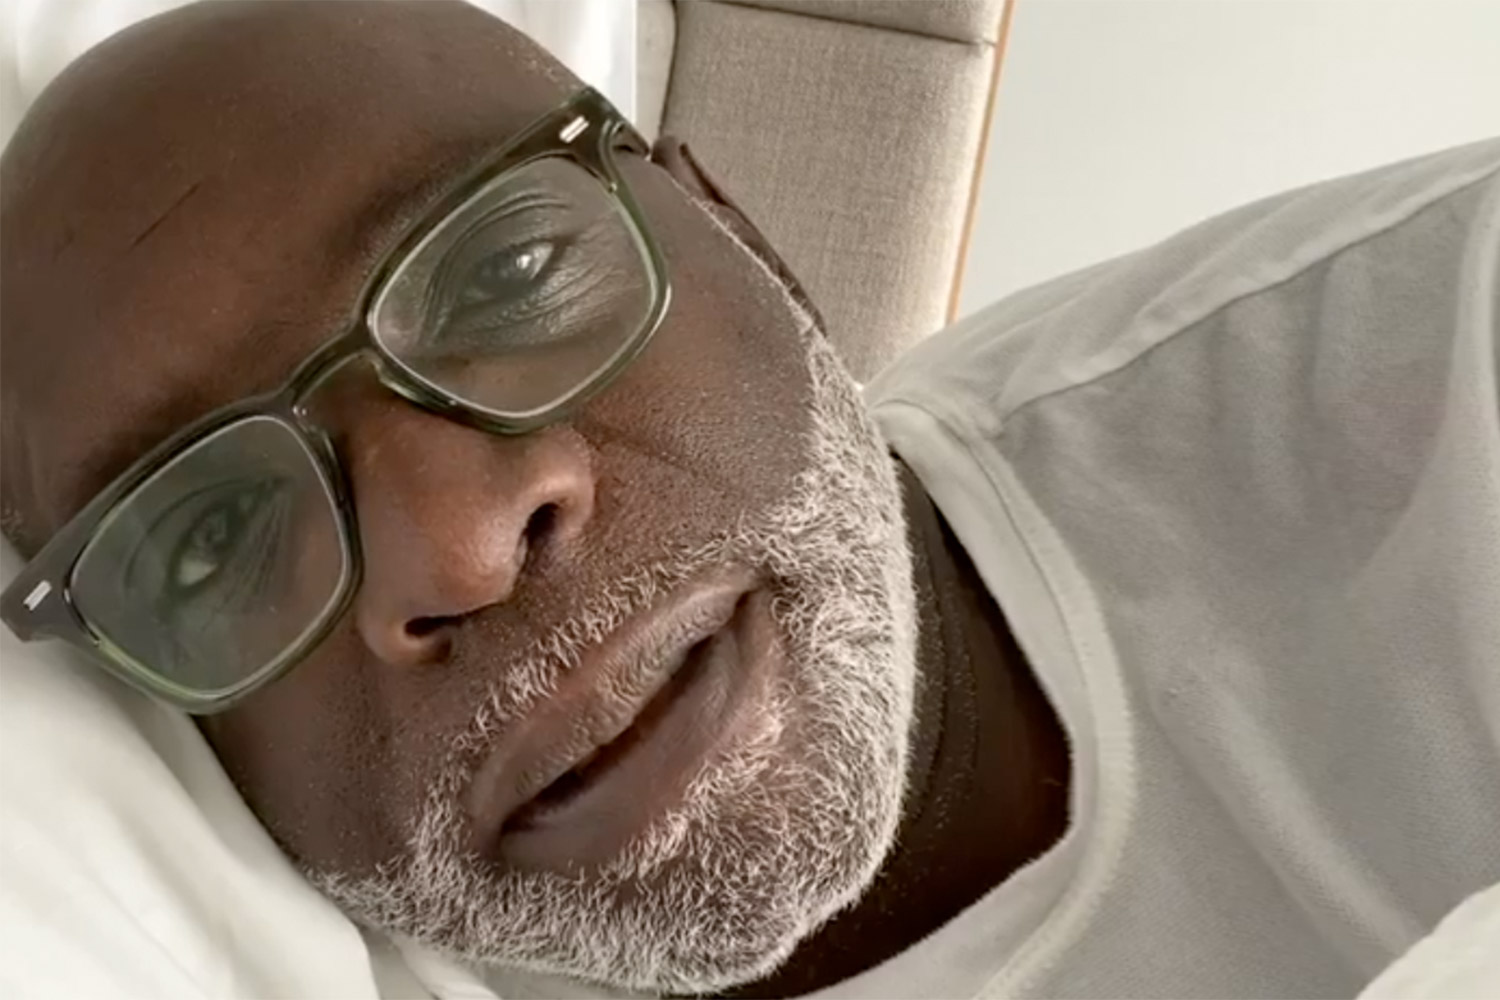 Former 'RHOA' Alum Peter Thomas Reveals He Has COVID-19: 'The Excrutiating Pain Is Crazy'